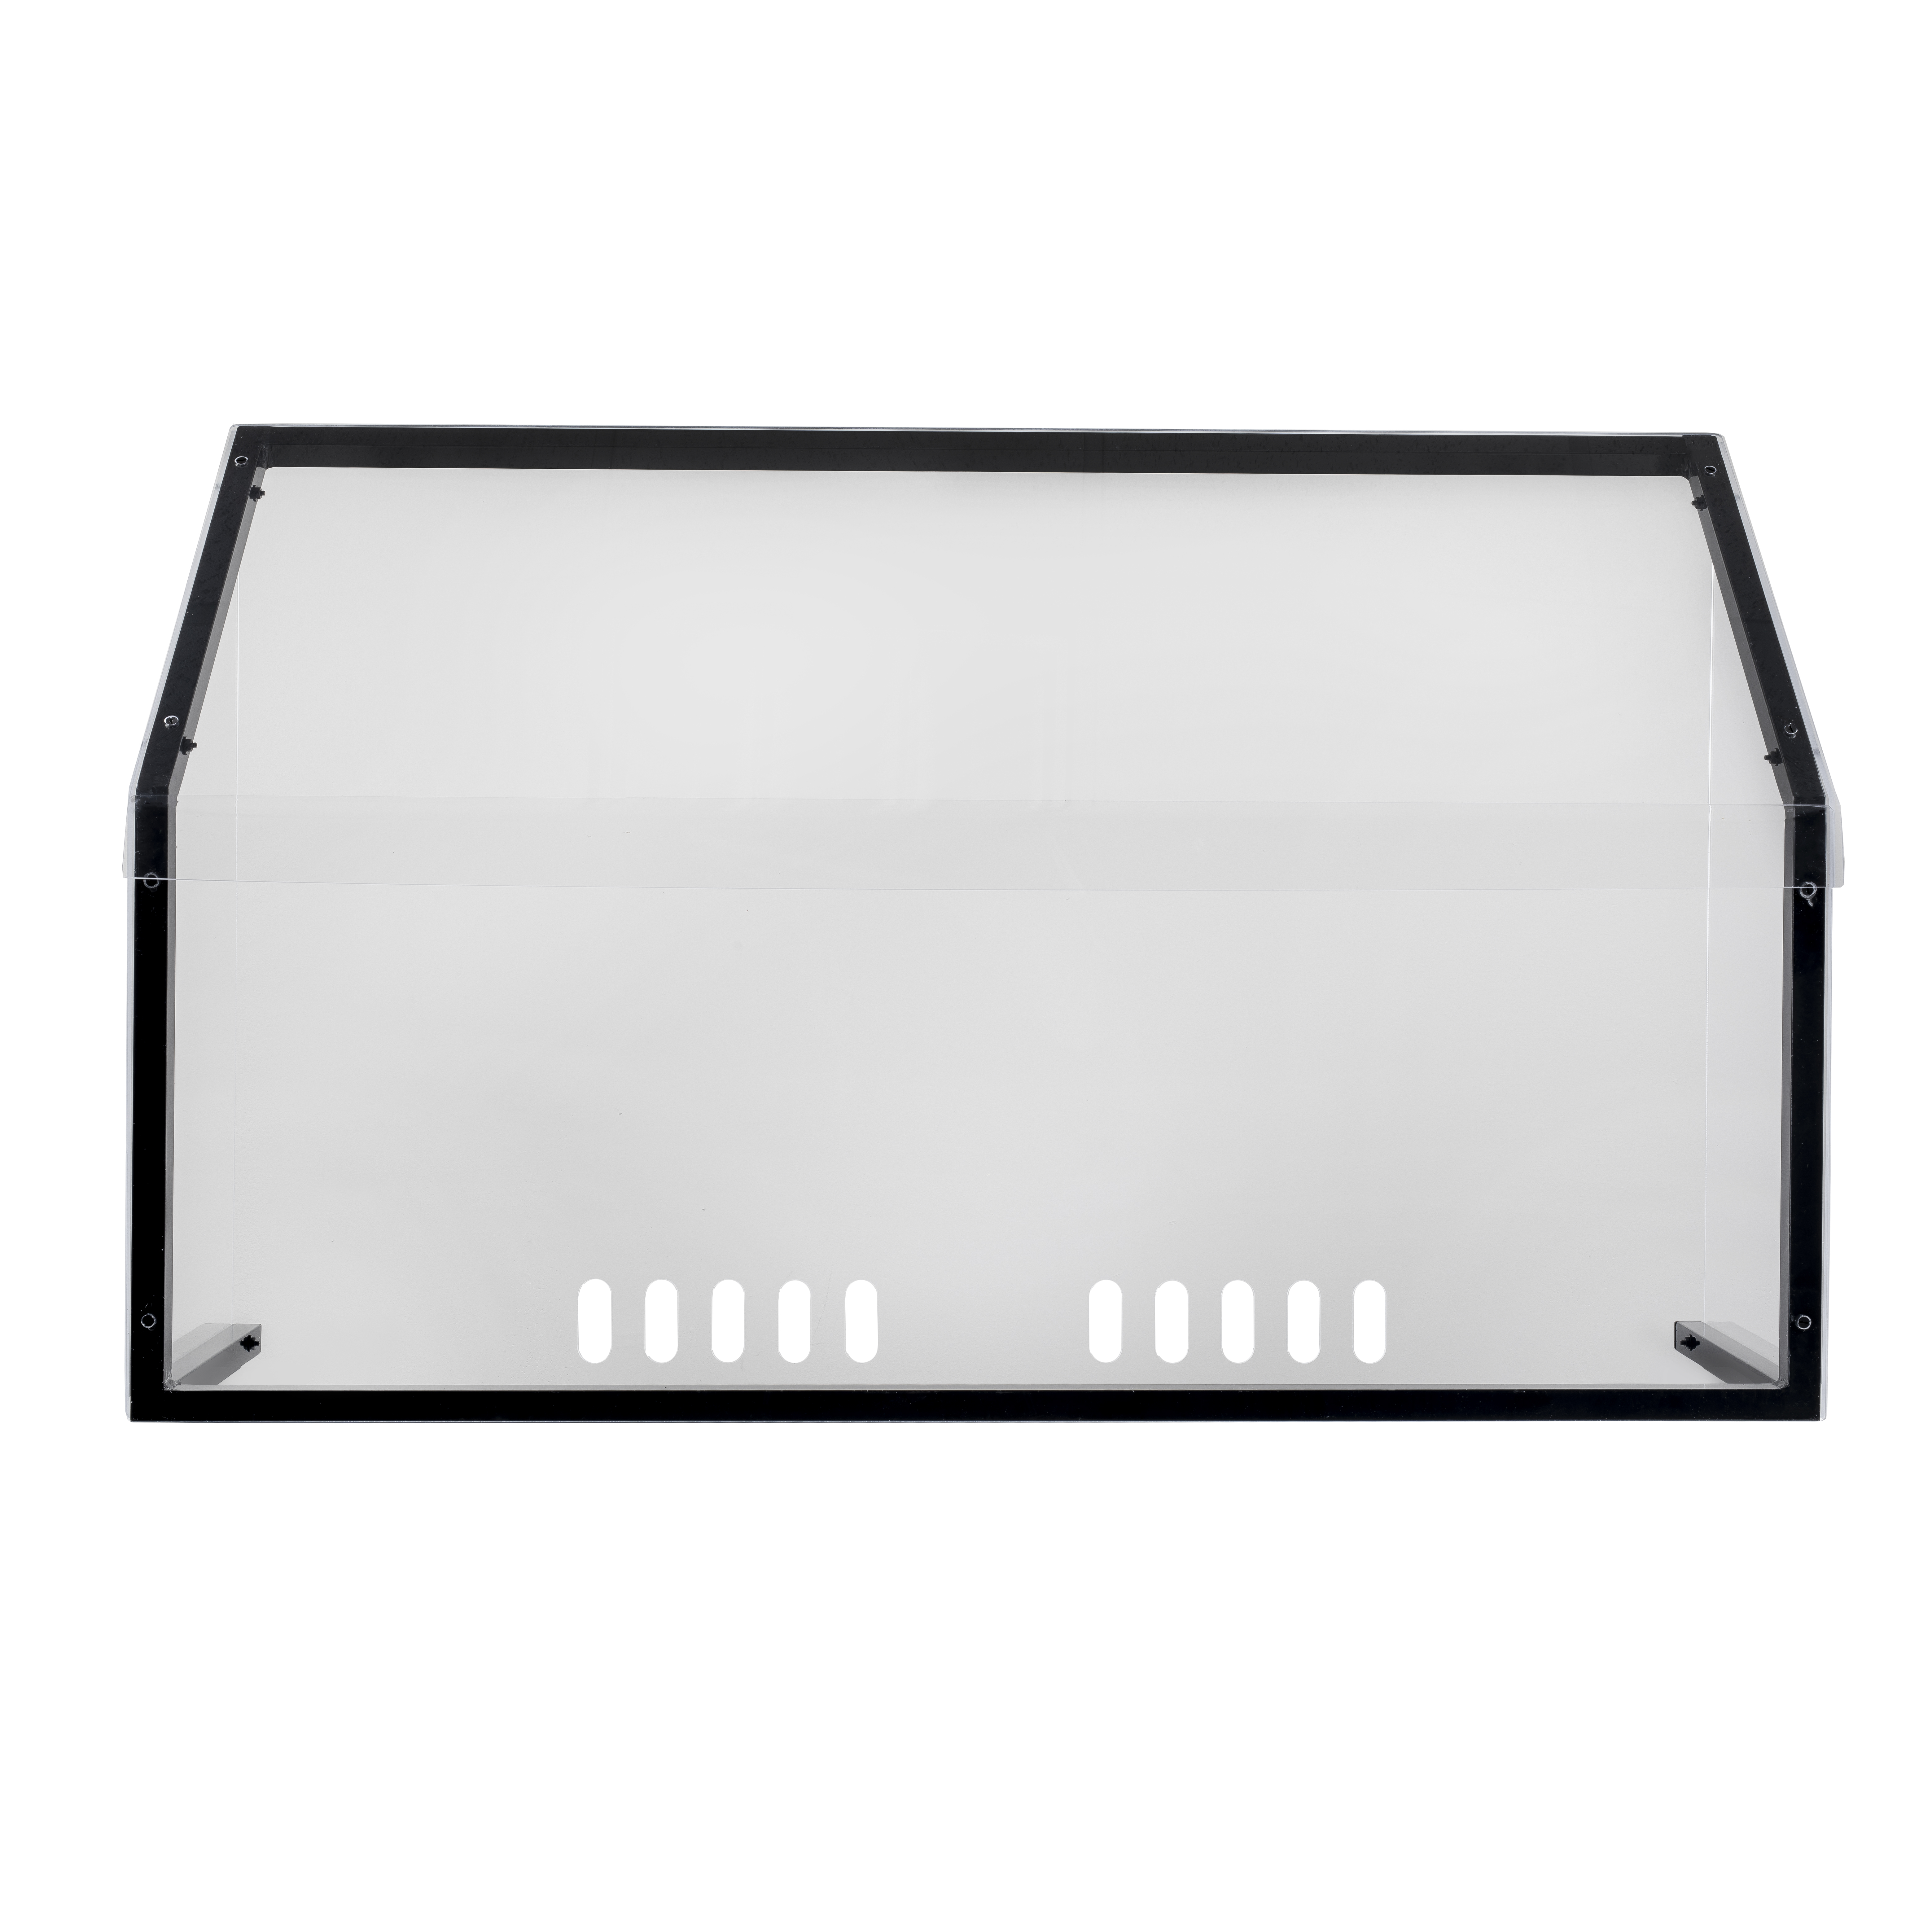 TableCraft Products CWACT2FSHIELD coutnertop shields